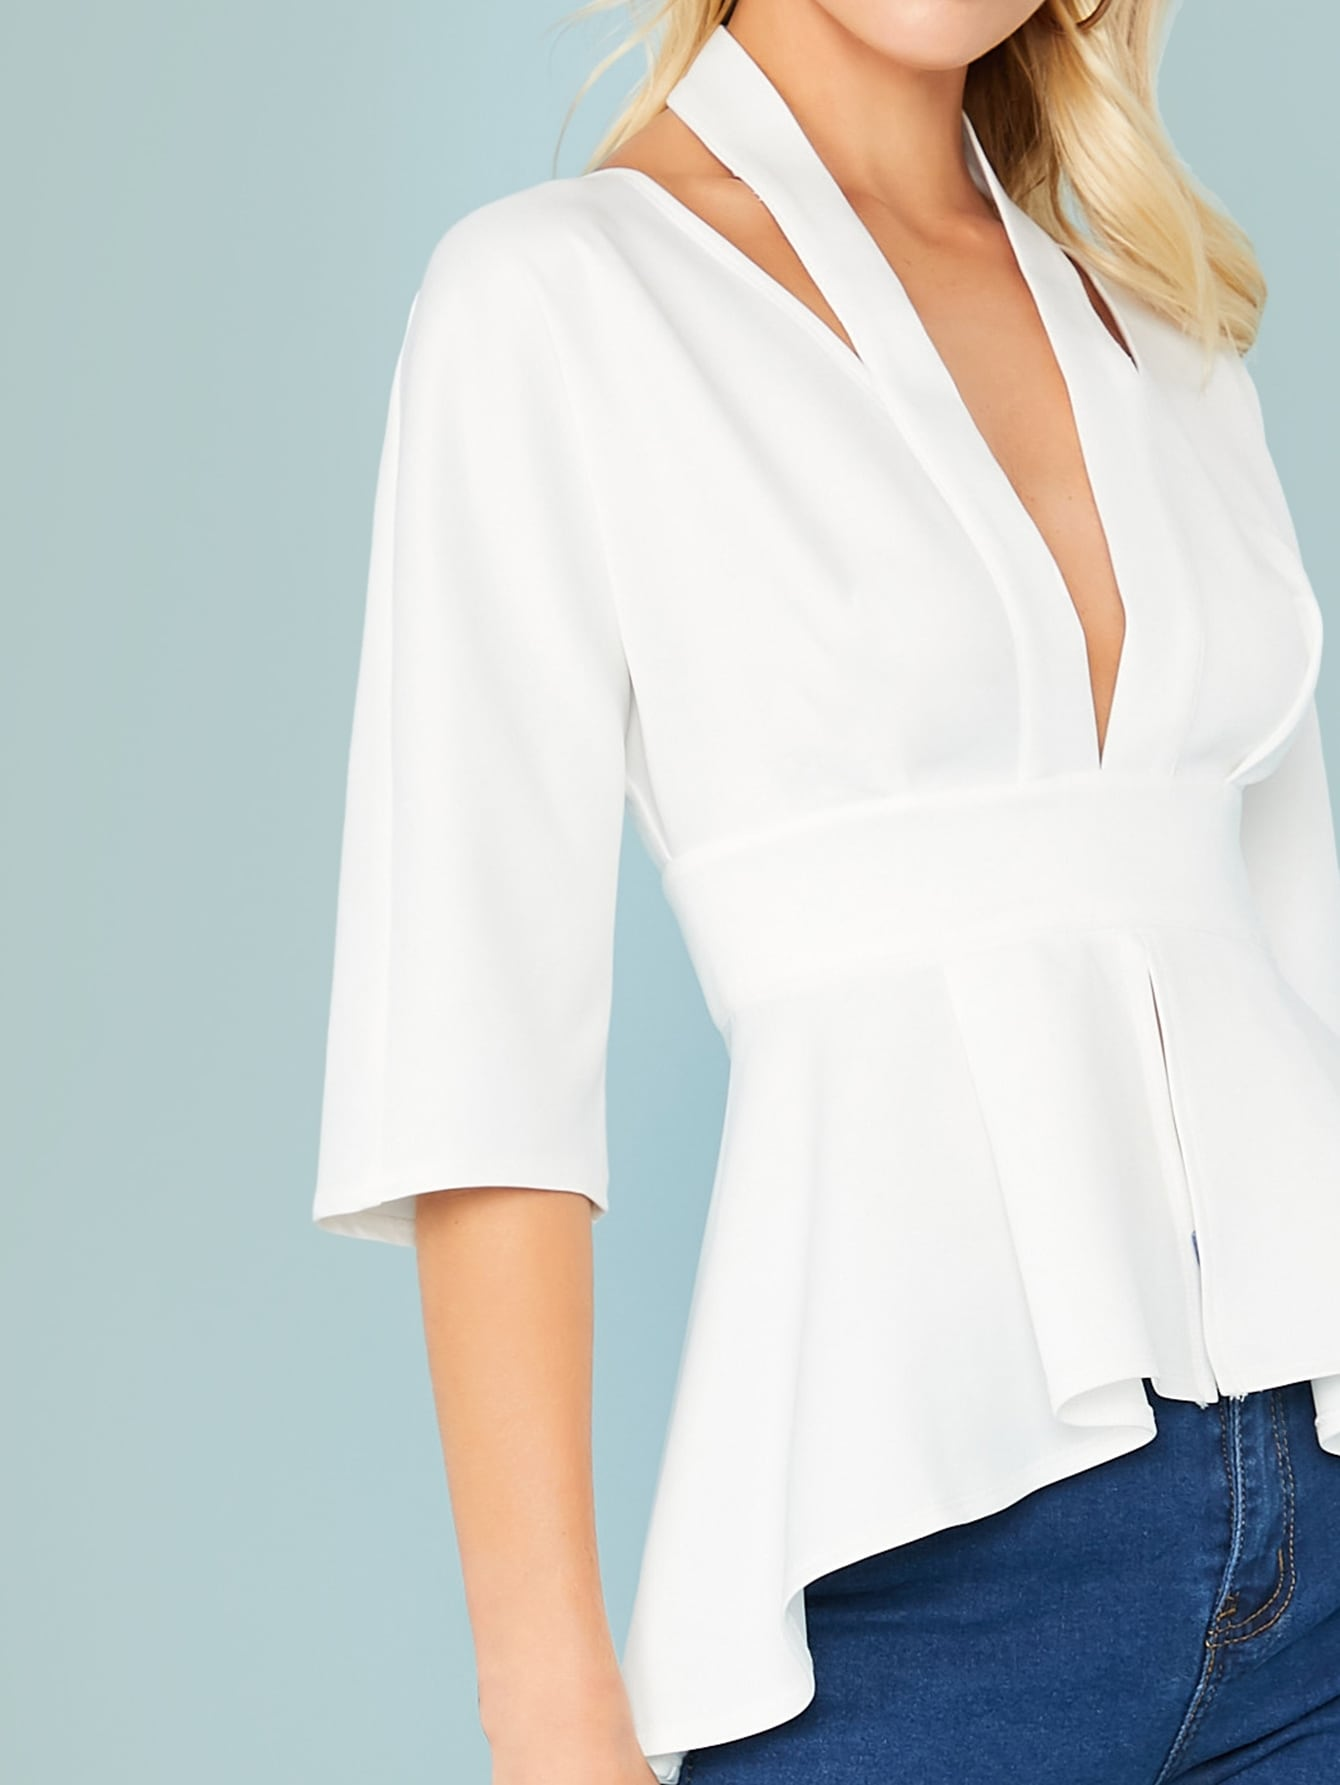 Solid Plunge Neck Cut Out Back Peplum Top